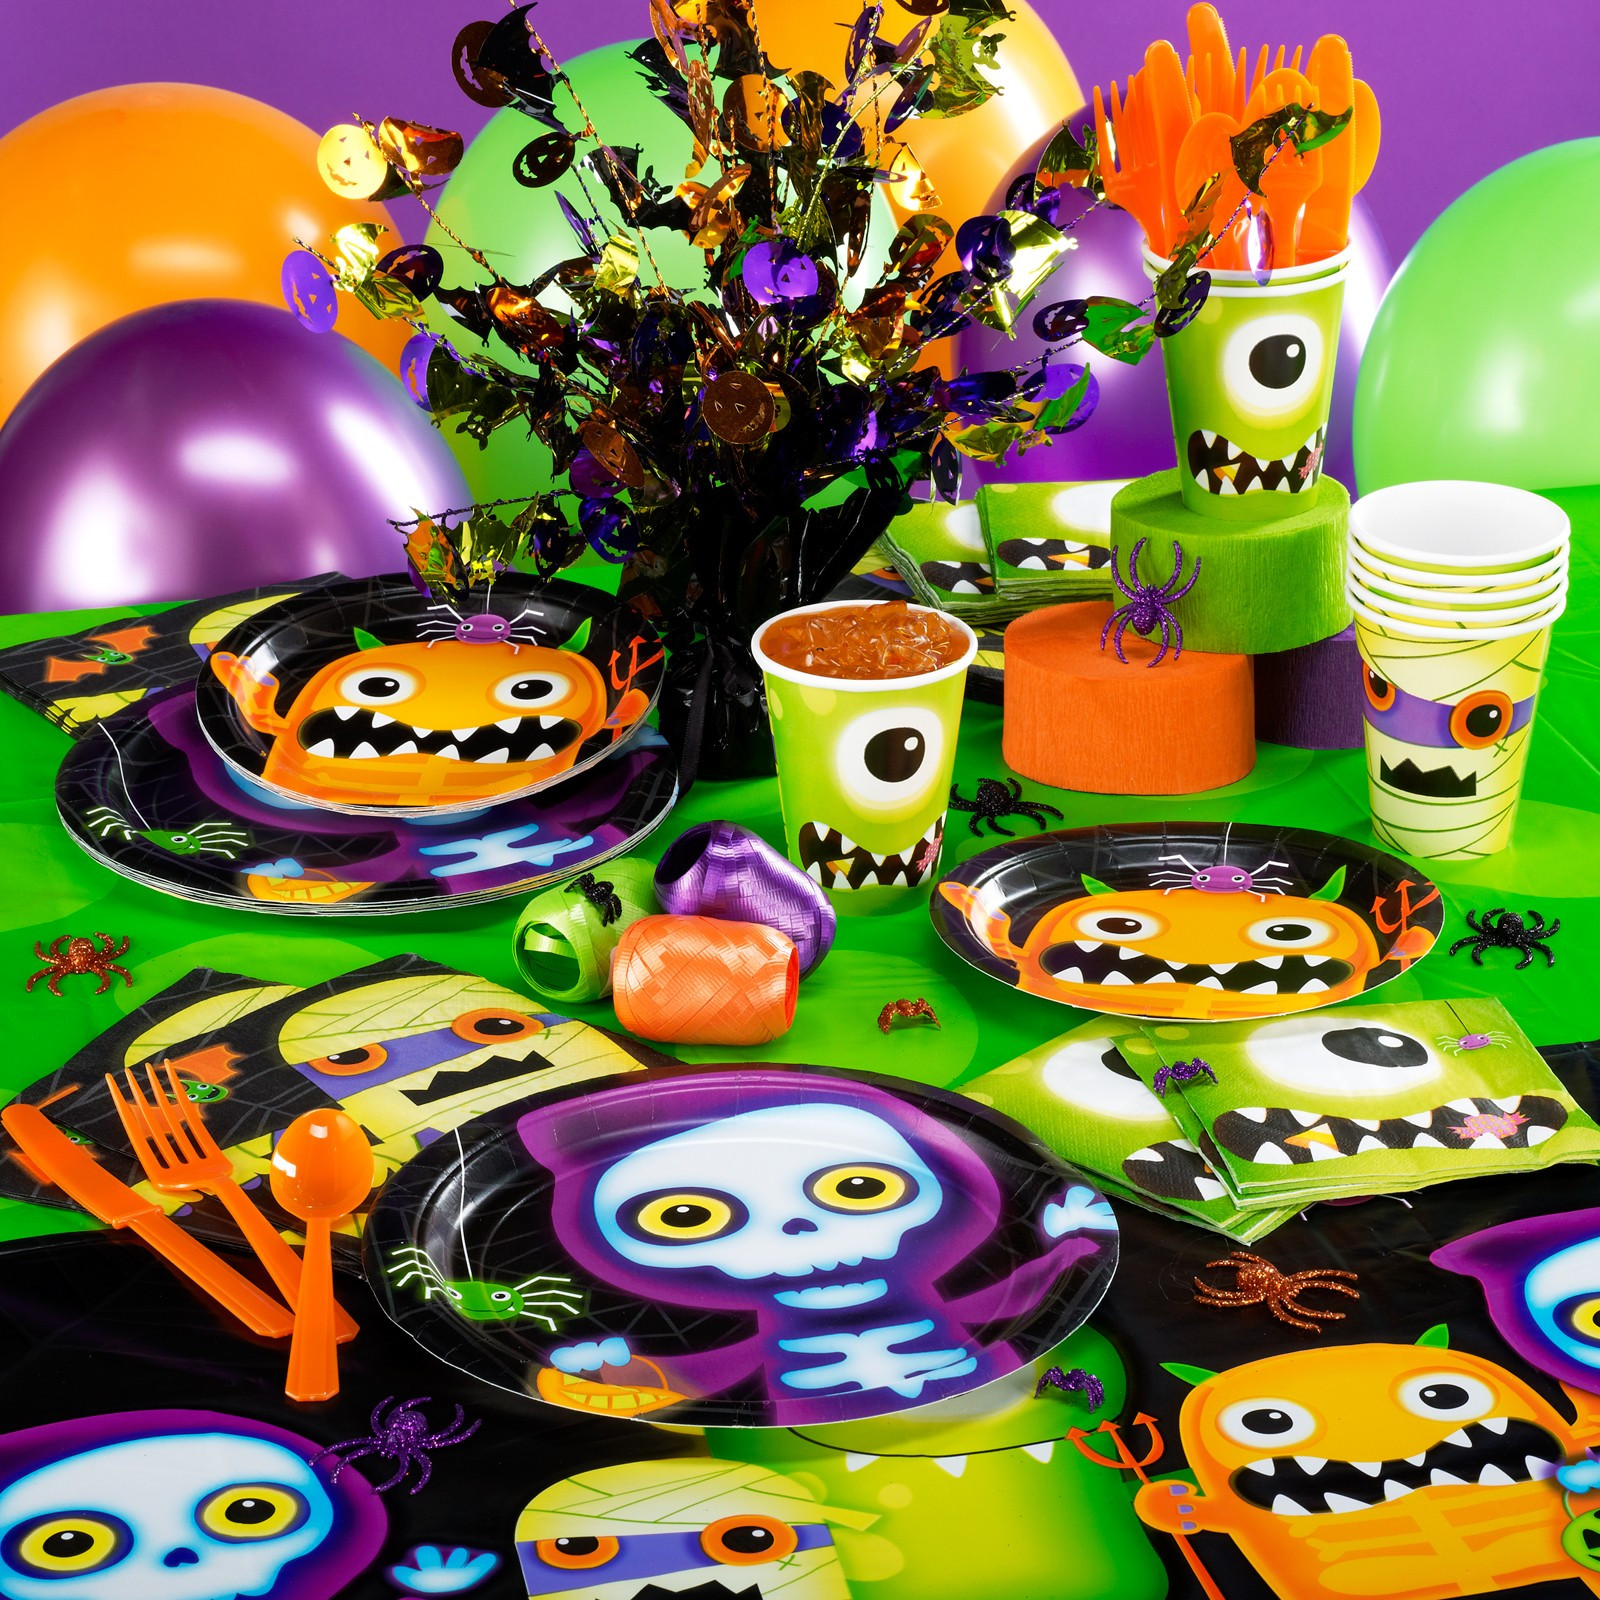 Best ideas about Birthday Party Supplies Online . Save or Pin Top 10 Halloween Party Supplies Now.